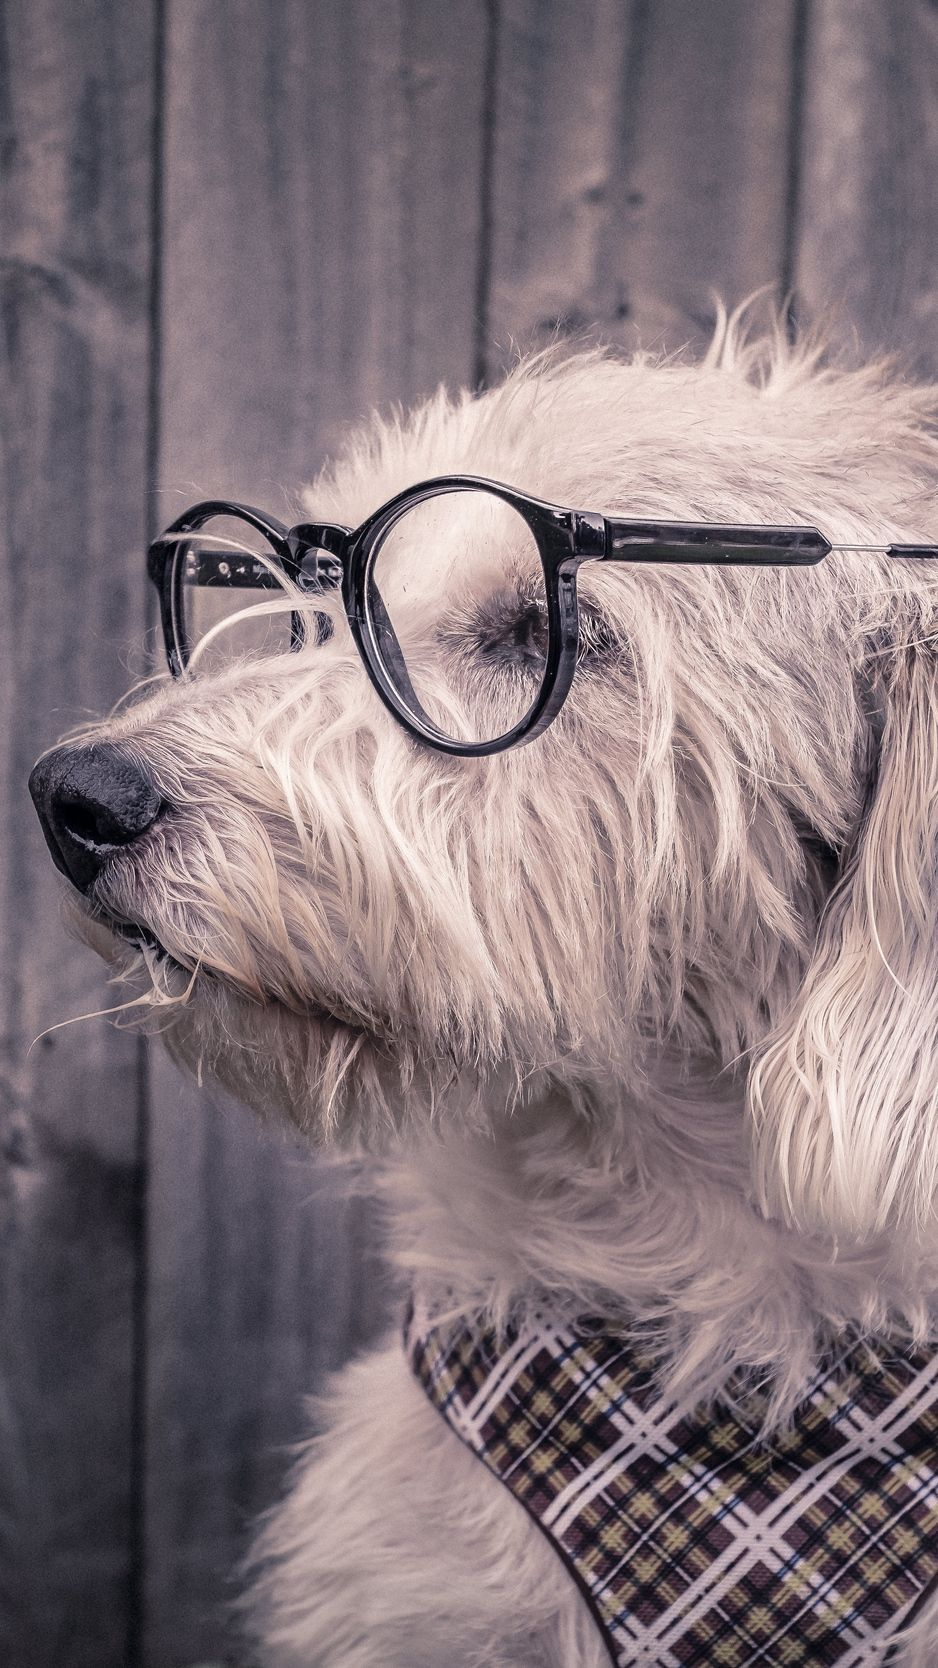 Dog Glasses Scarf Wallpaper Background Iphone Dog With Glasses Dog Wallpaper Iphone Dog Wallpaper